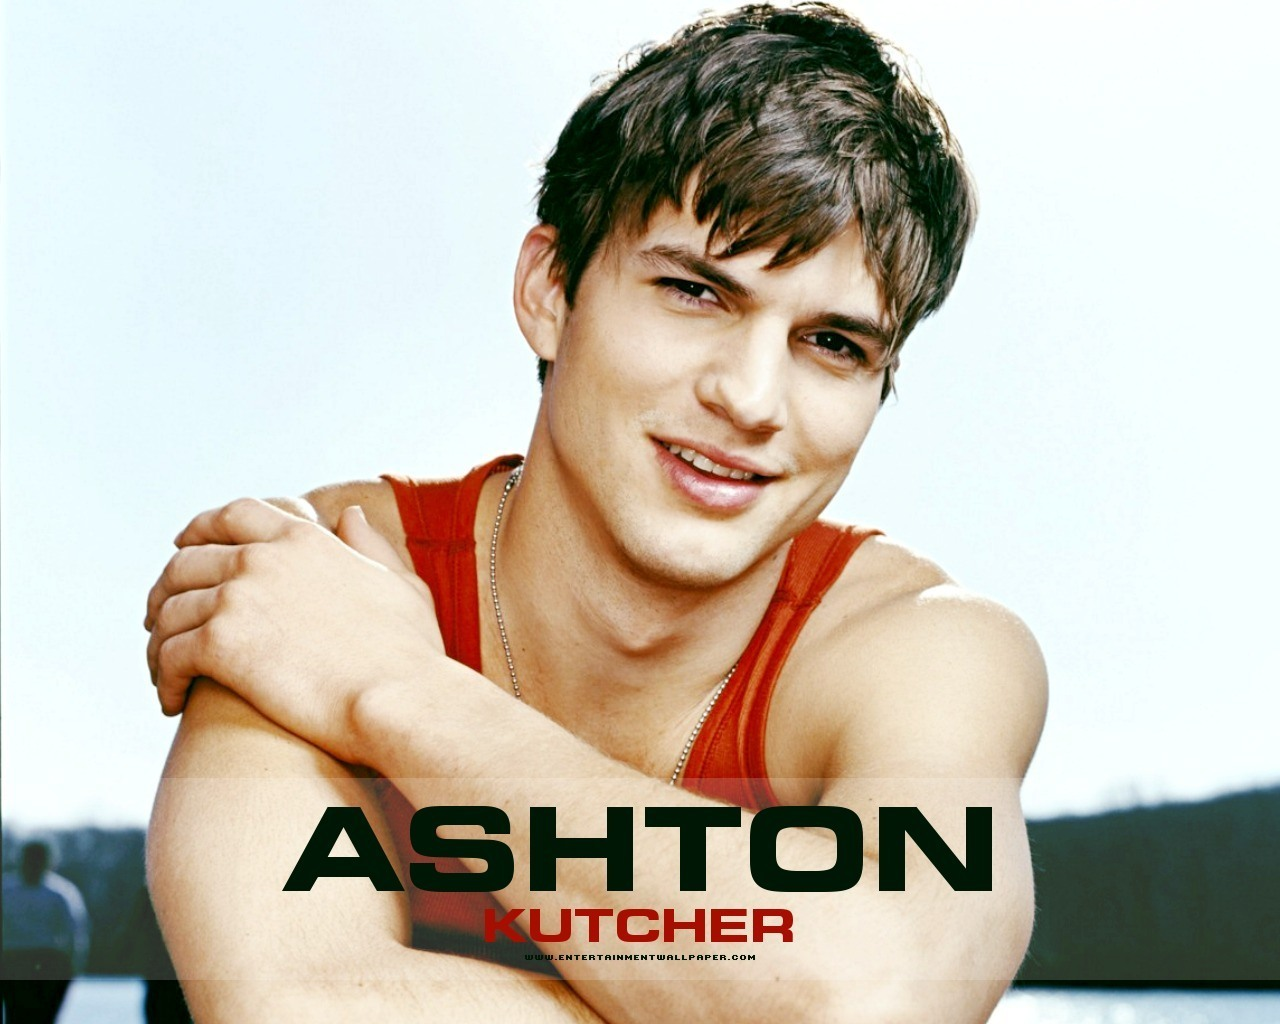 Ashton Kutcher - Photos